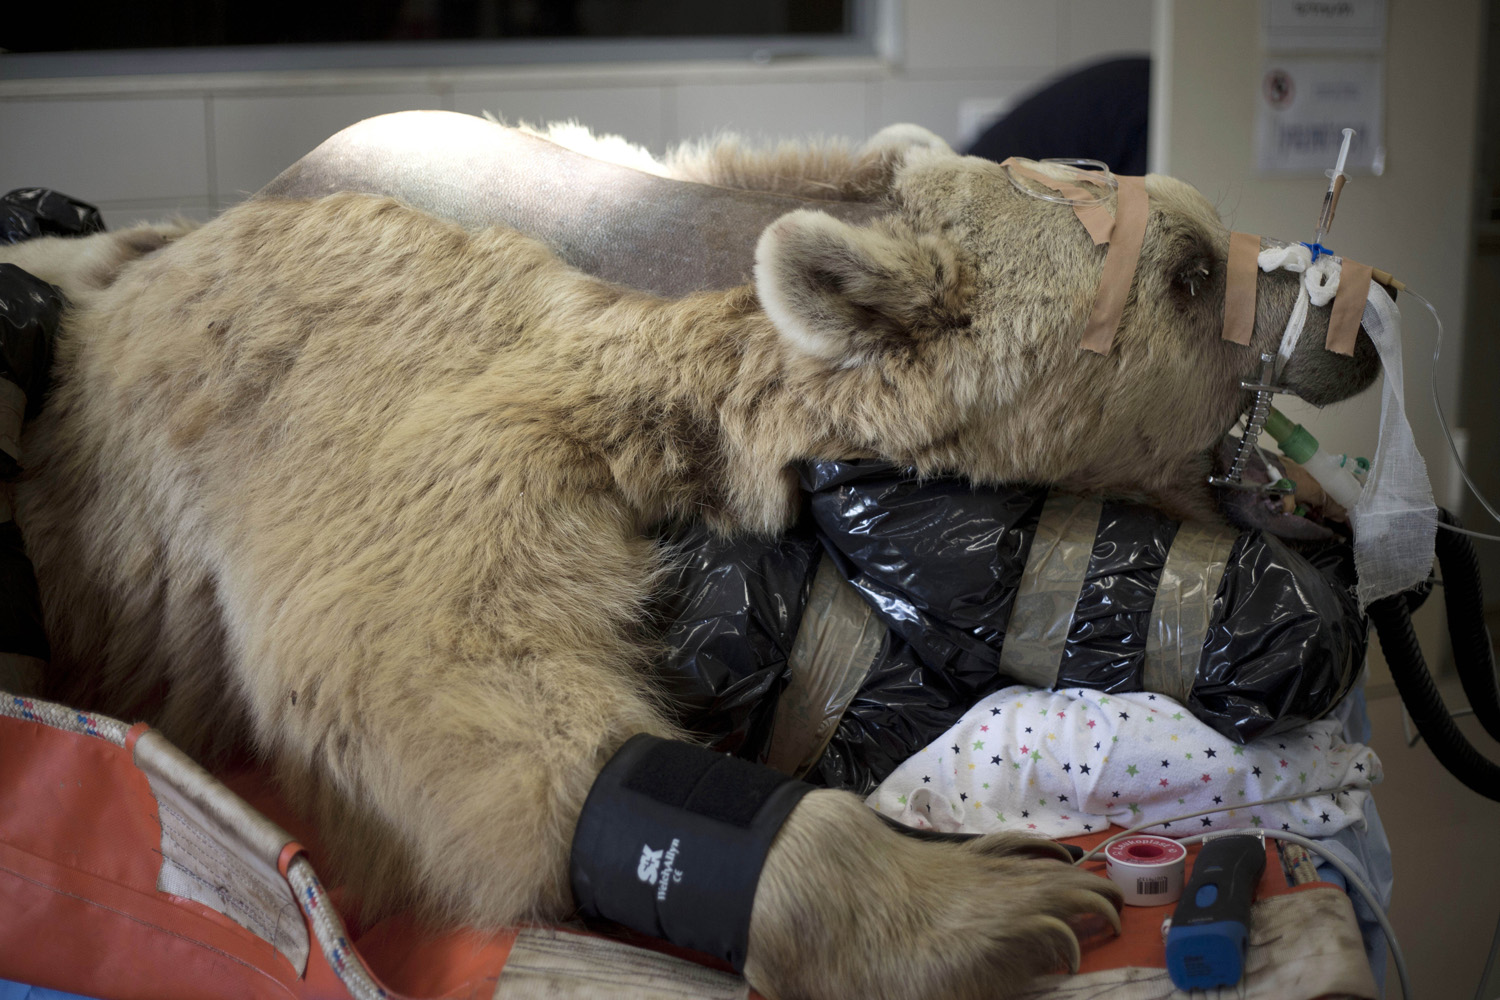 May 7, 2014. Mango, a 19-year-old male Syrian brown bear, rests on a bed as zoo veterinarians and staff prepare him for surgery in the Ramat Gan Zoological Center's animal hospital near Tel Aviv, Israel.